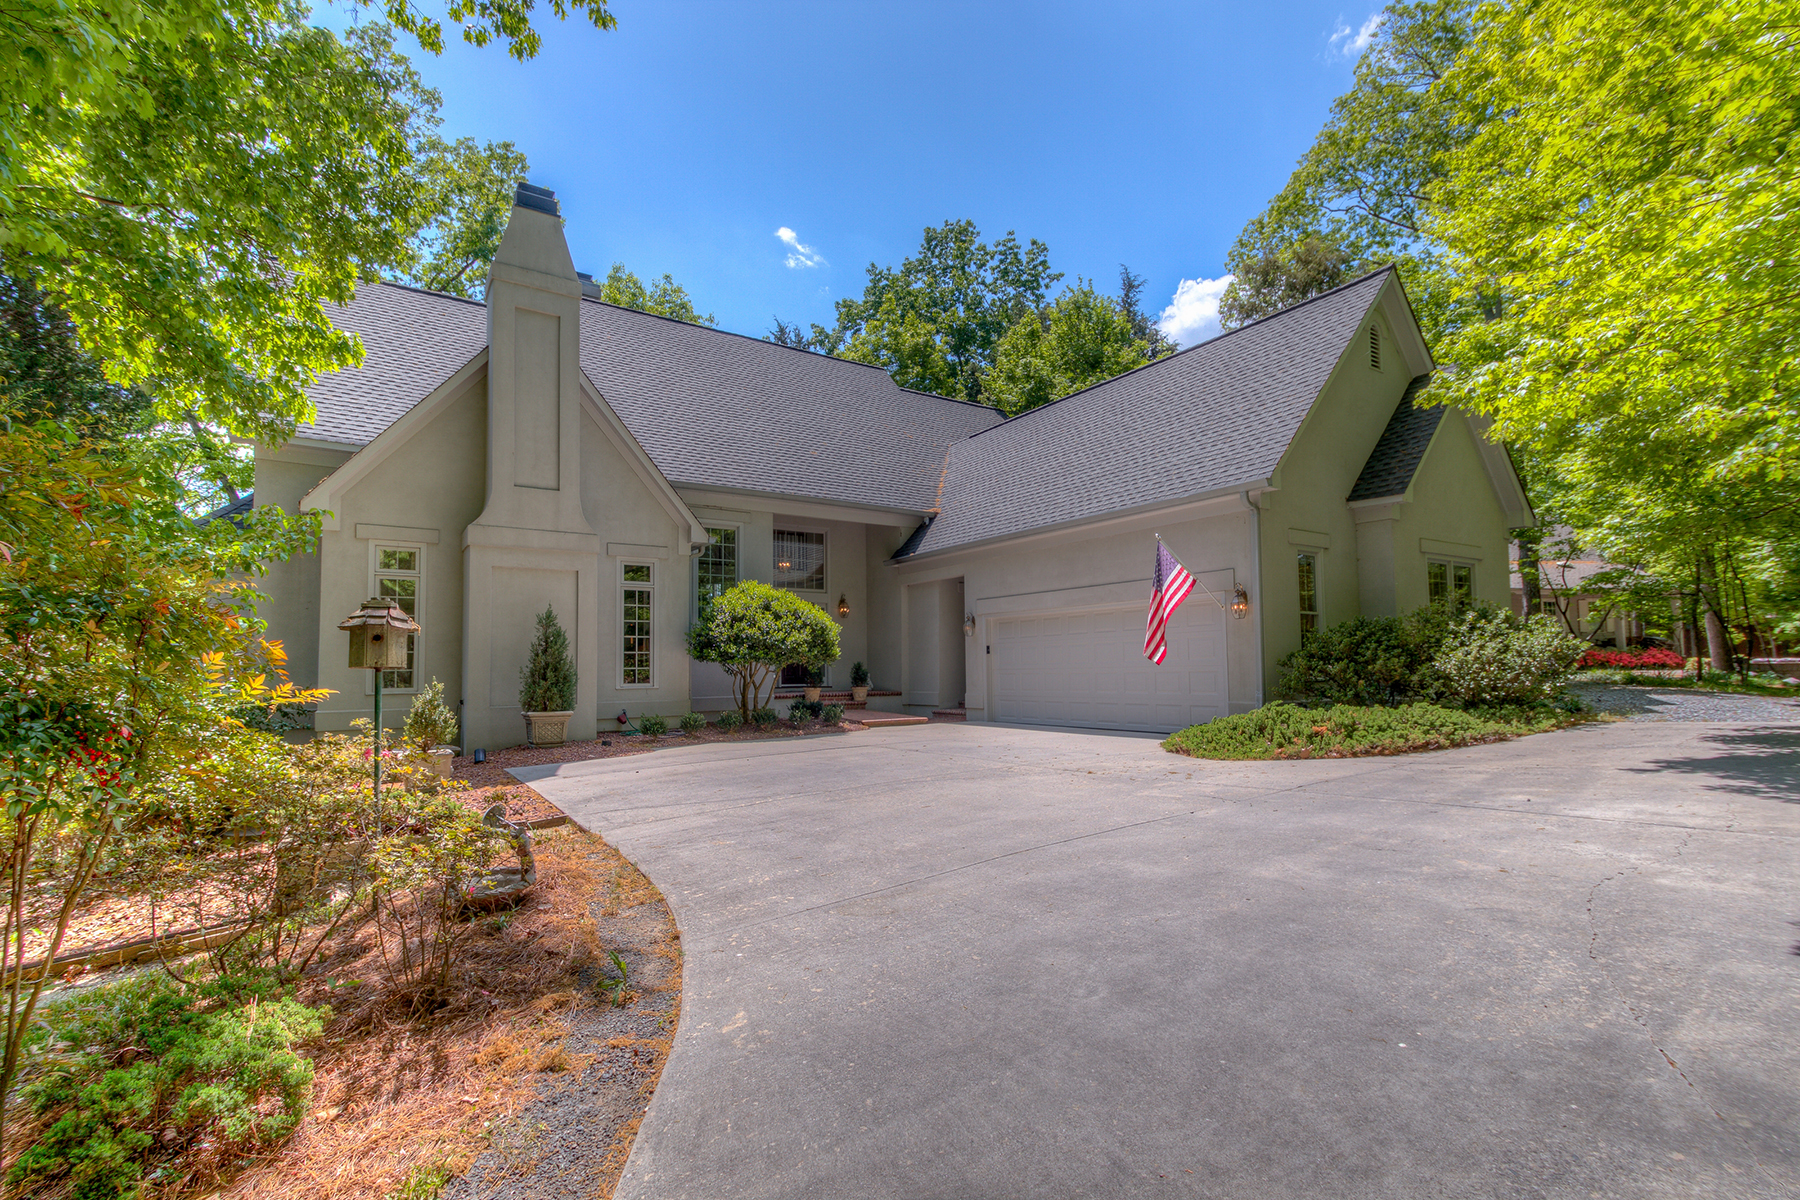 Single Family Home for Sale at RIVER HILLS 84 Heritage Dr 71 Lake Wylie, South Carolina, 29710 United States